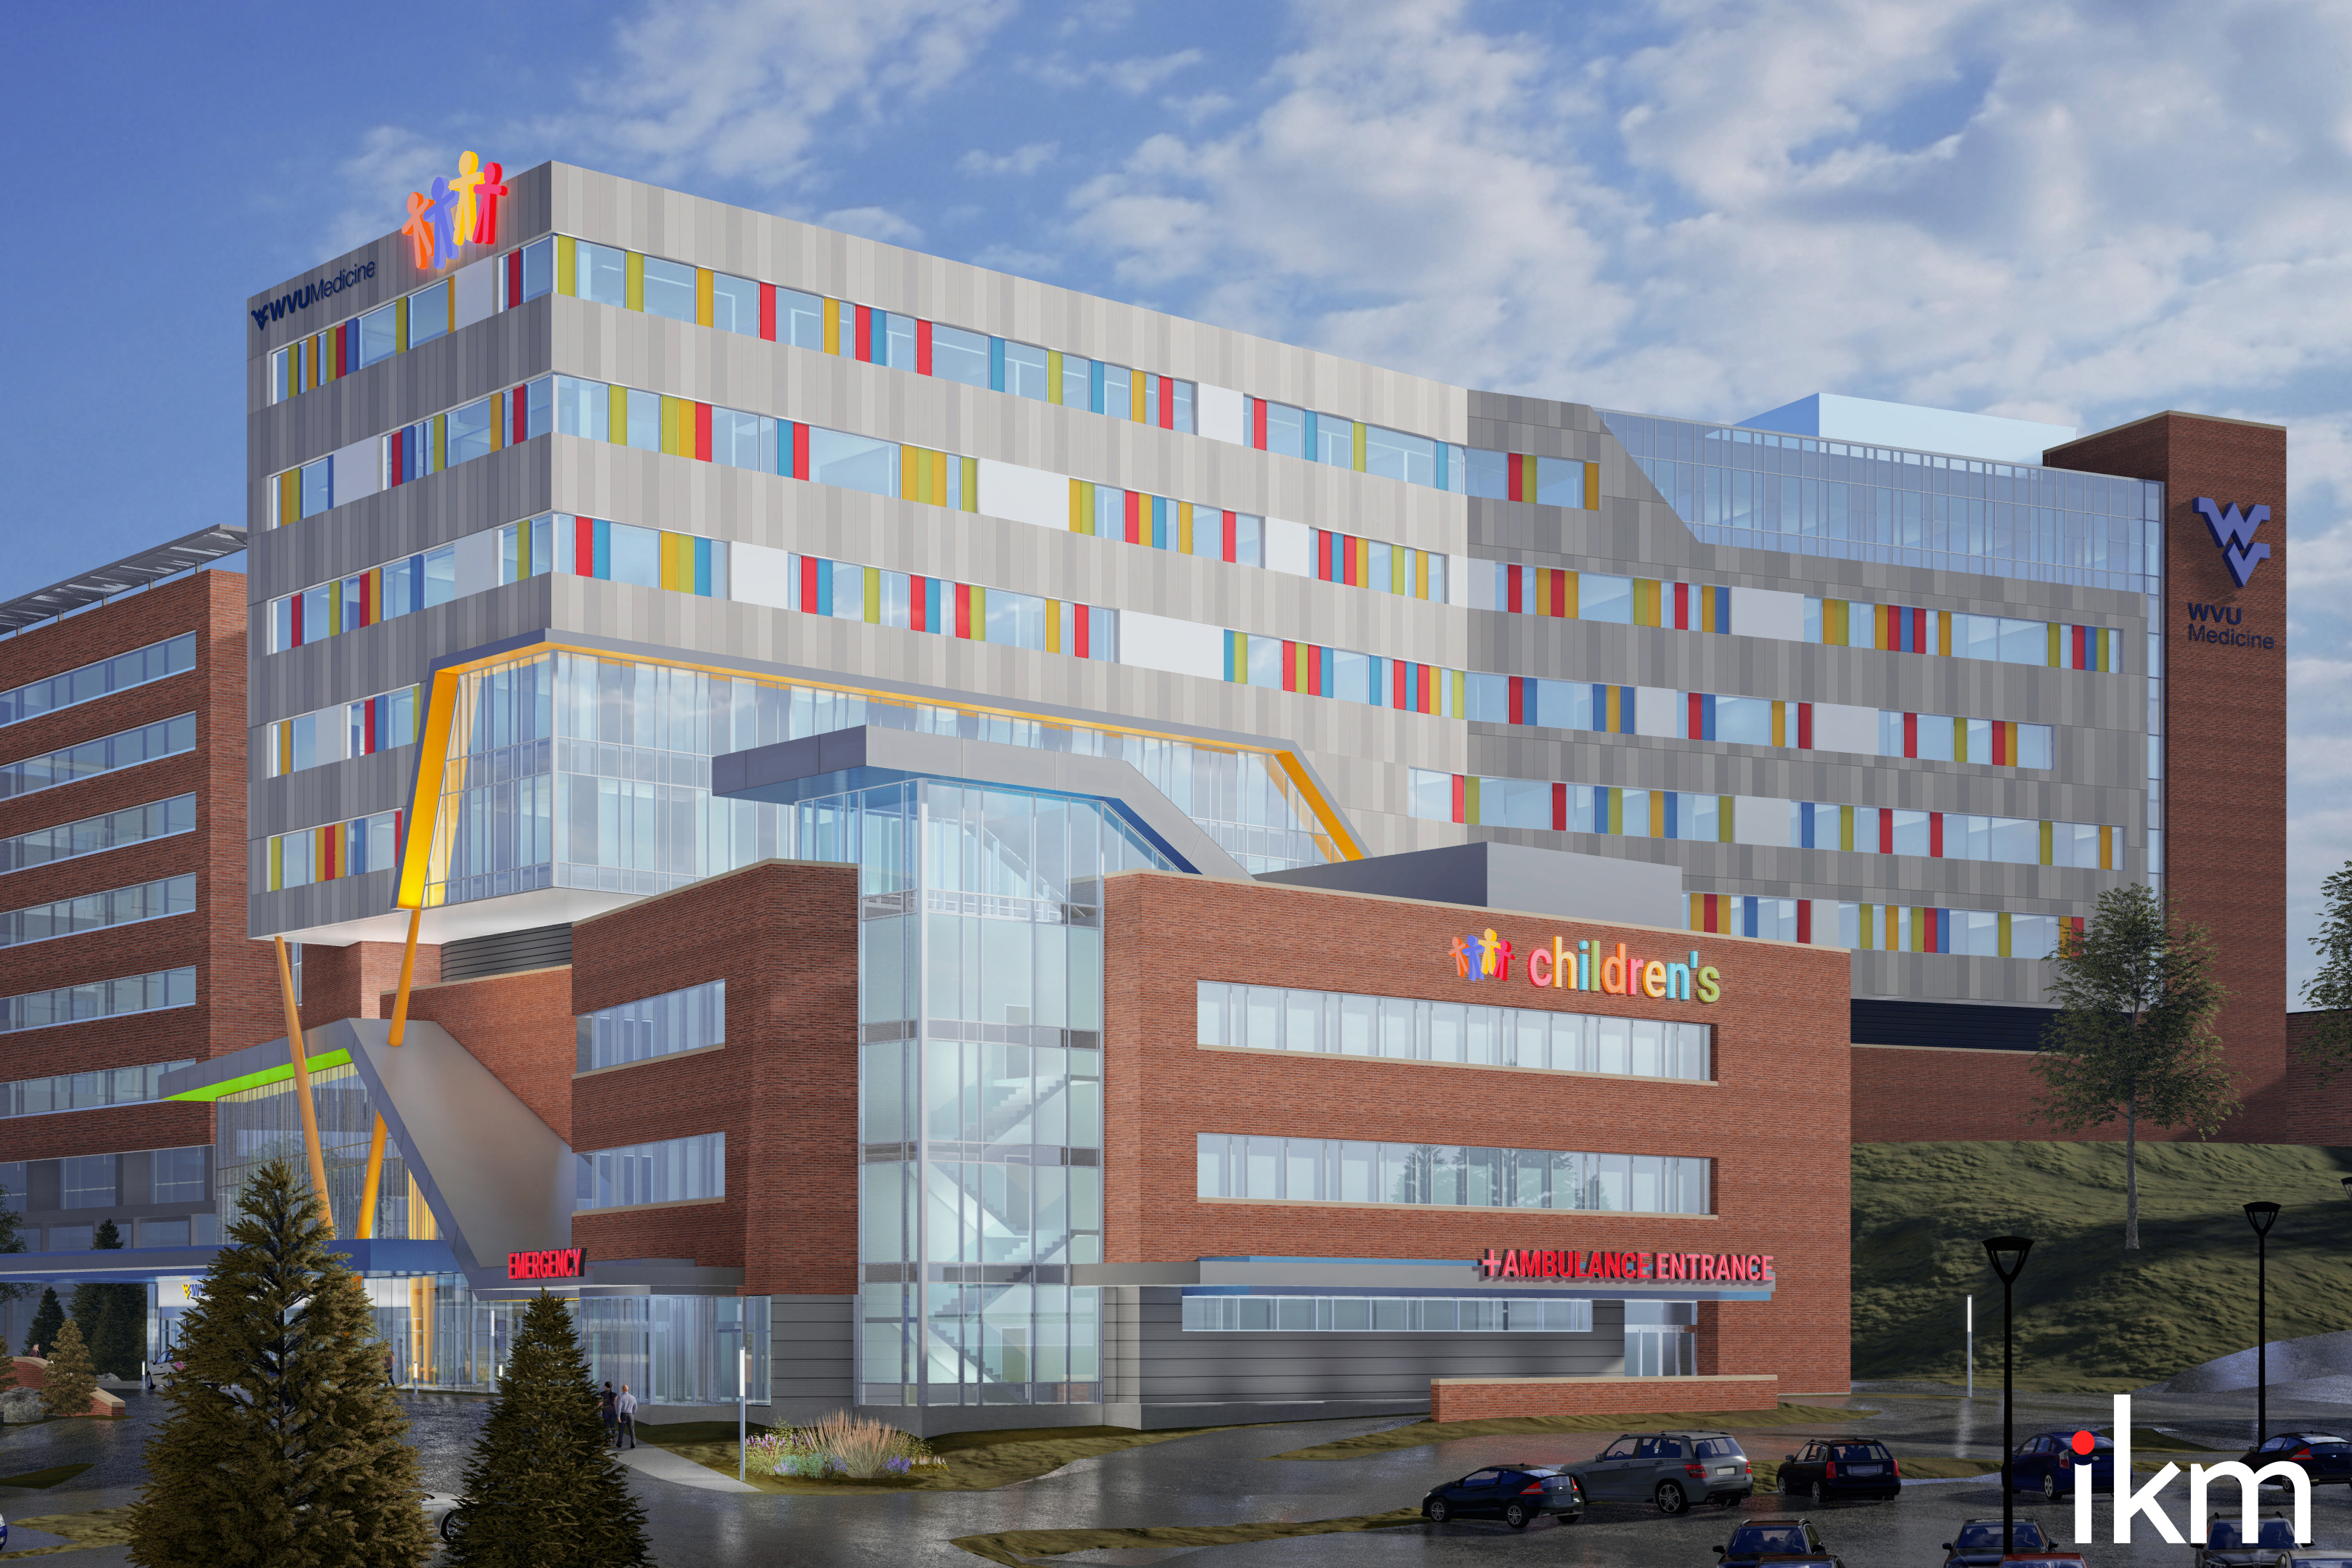 Artist rendering of planned WVU Medicine Children's Hospital in Morgantown.